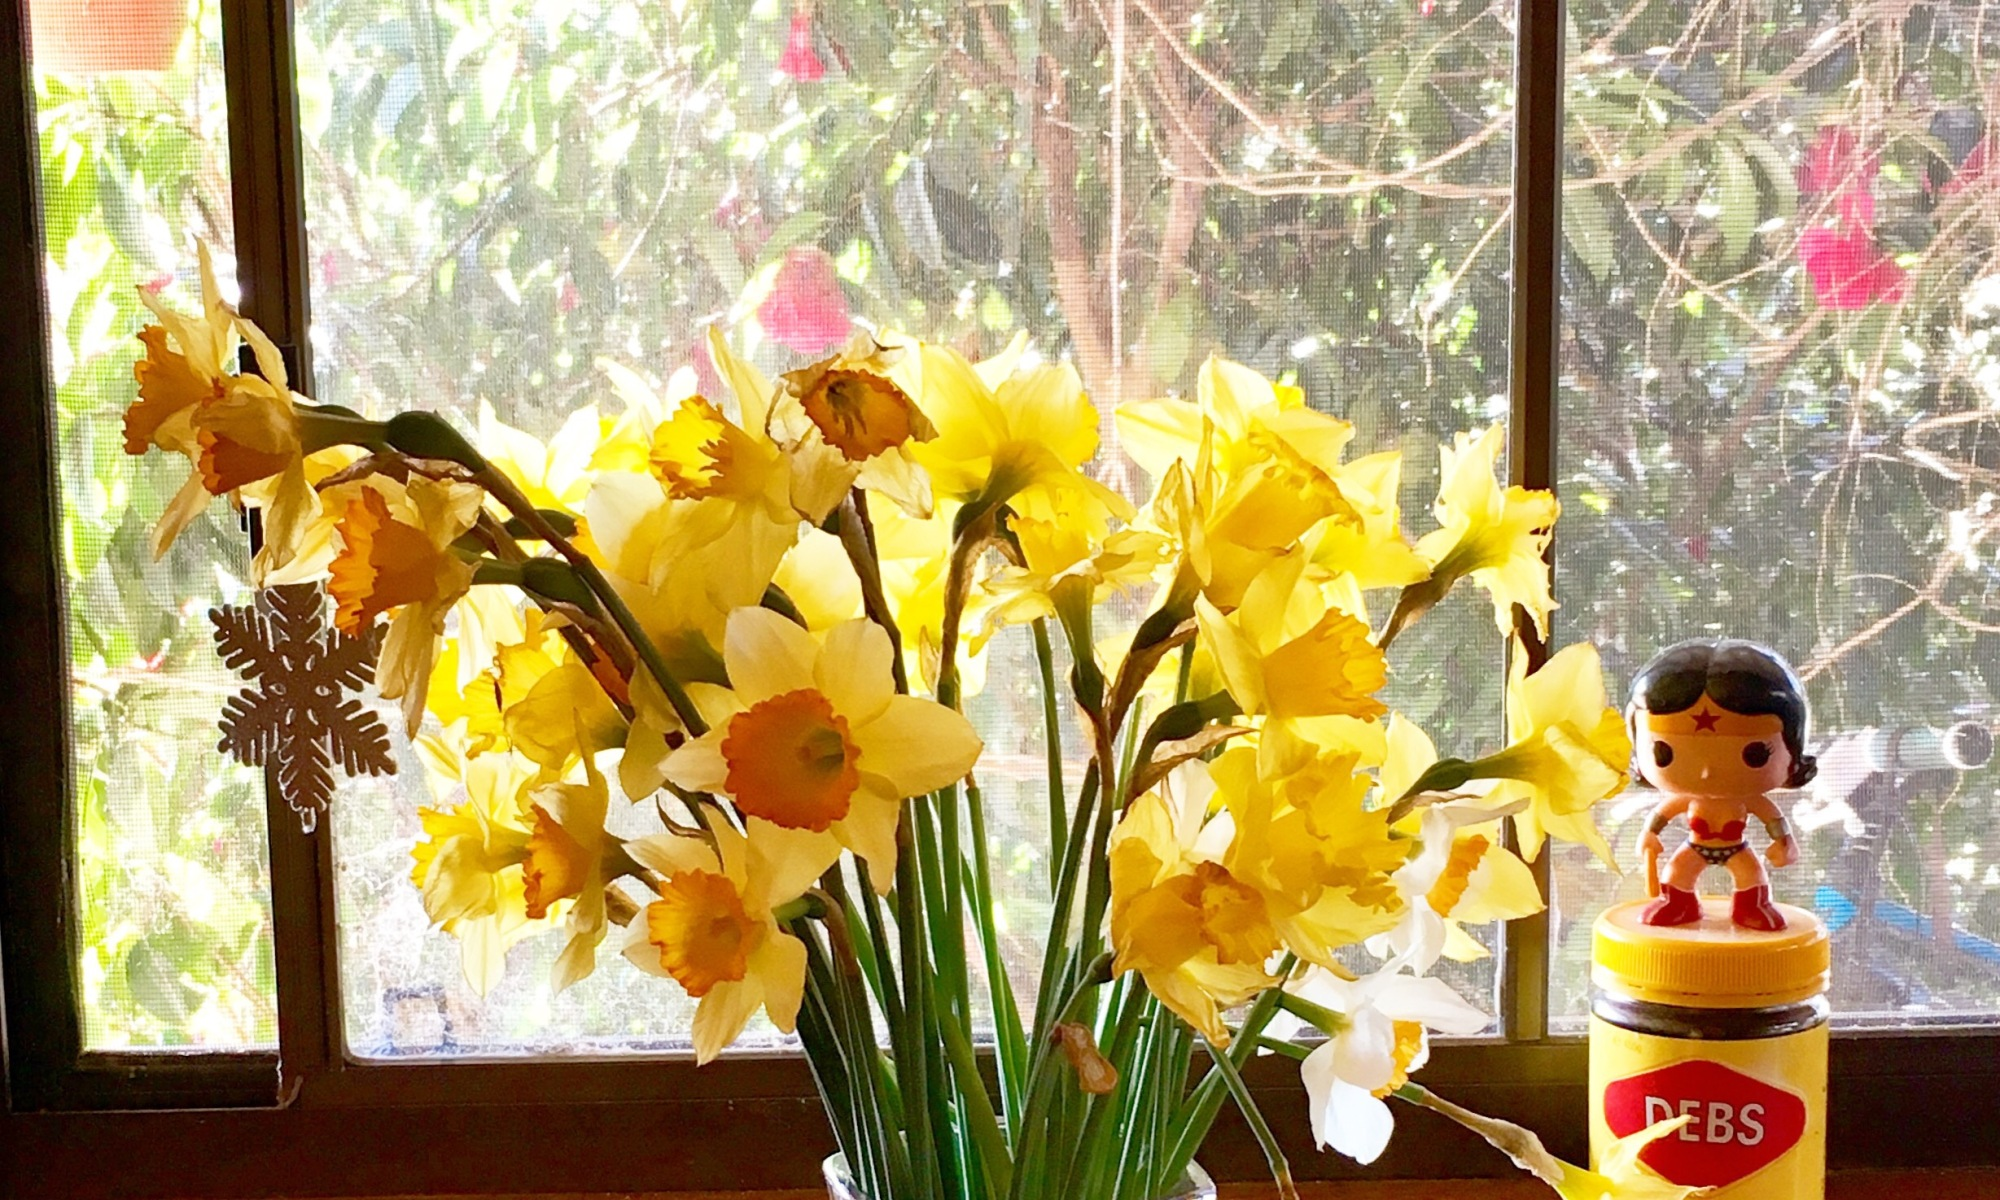 View through the window on a sunny spring day